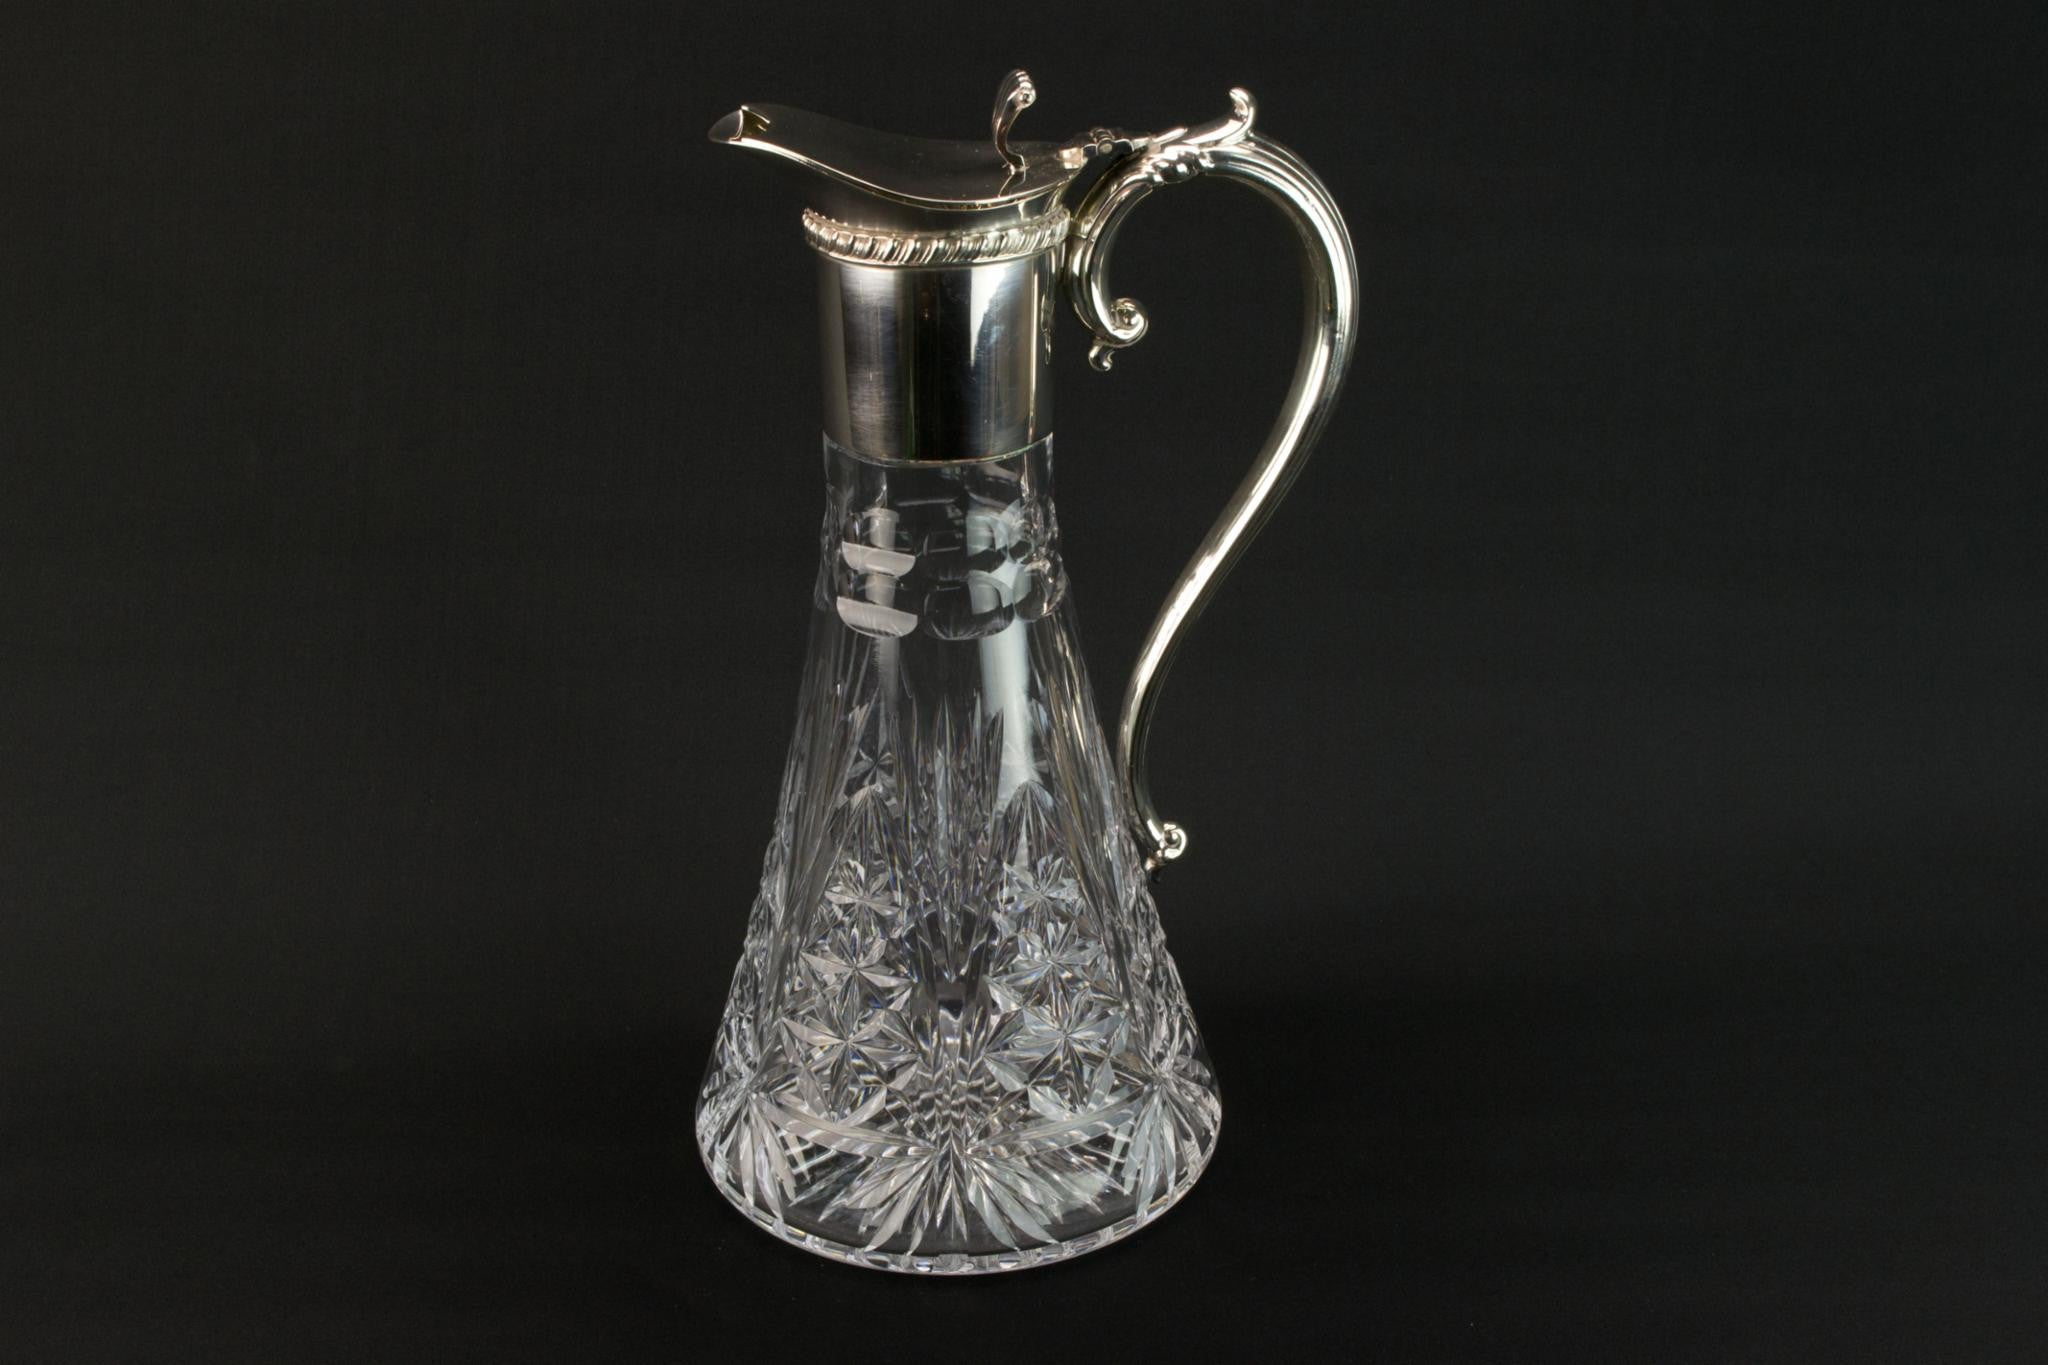 Cut glass & silver plated wine carafe, English 1930s